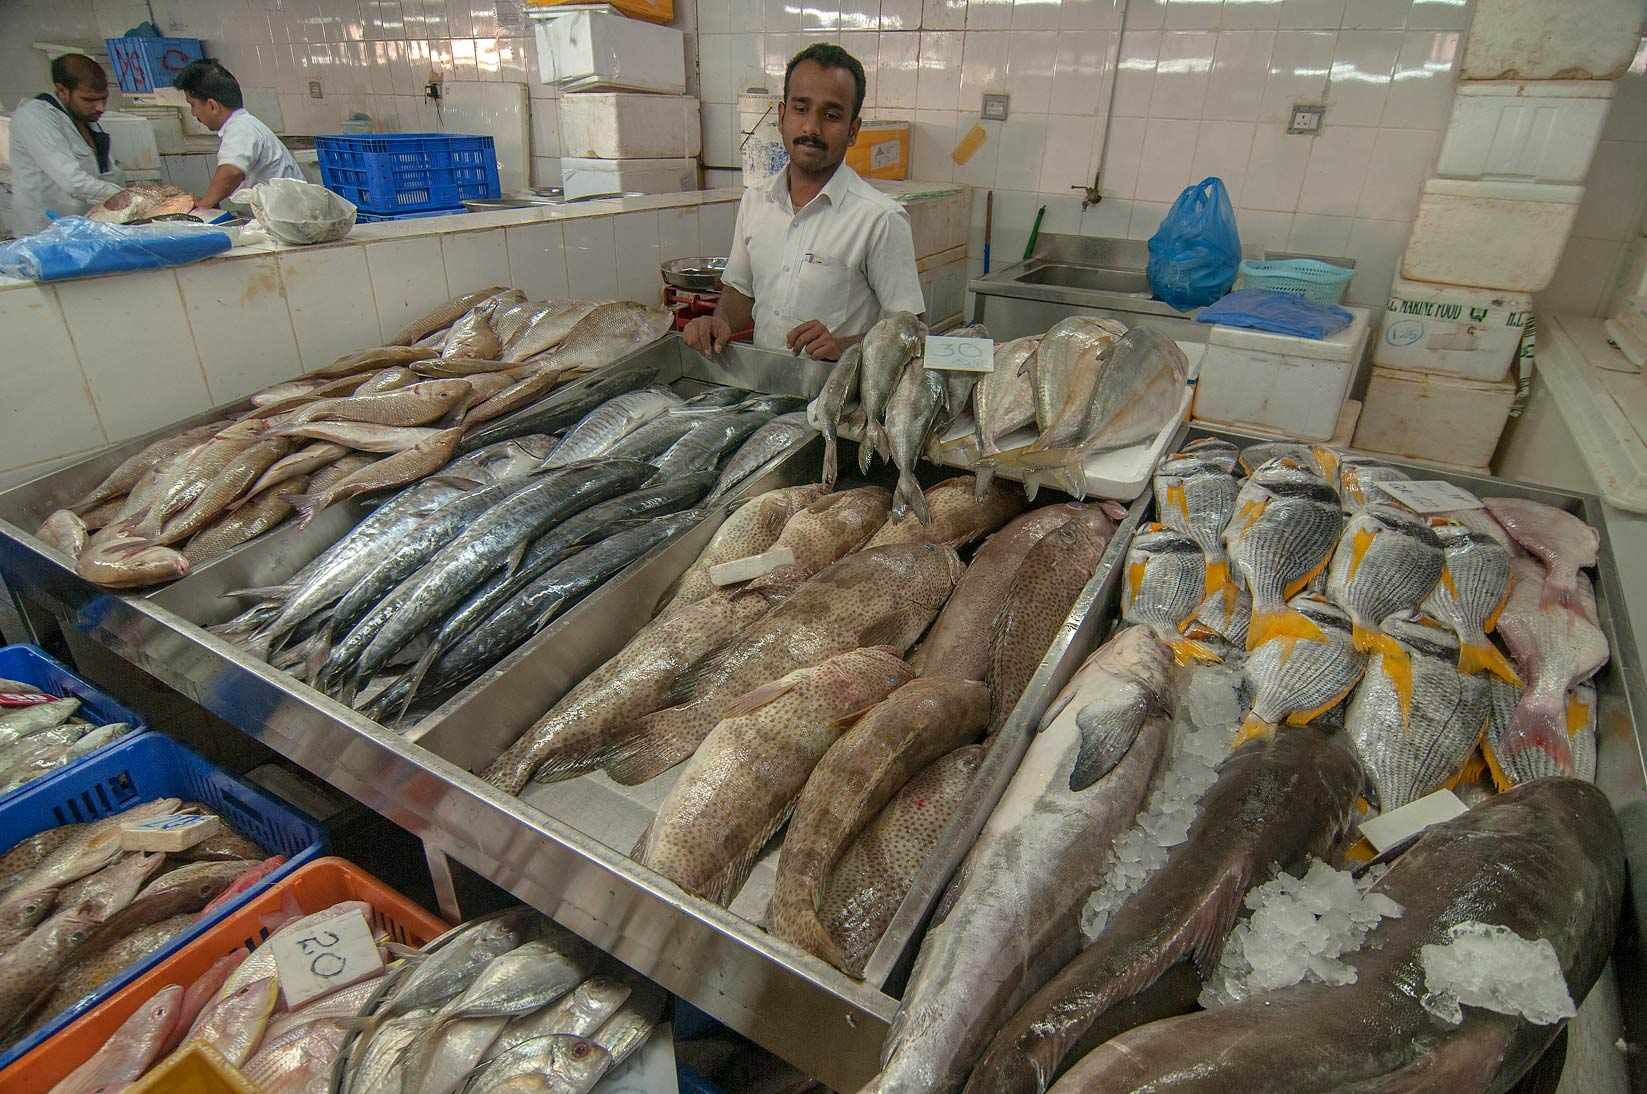 Various fish in Wholesale Fish Market. Doha, Qatar